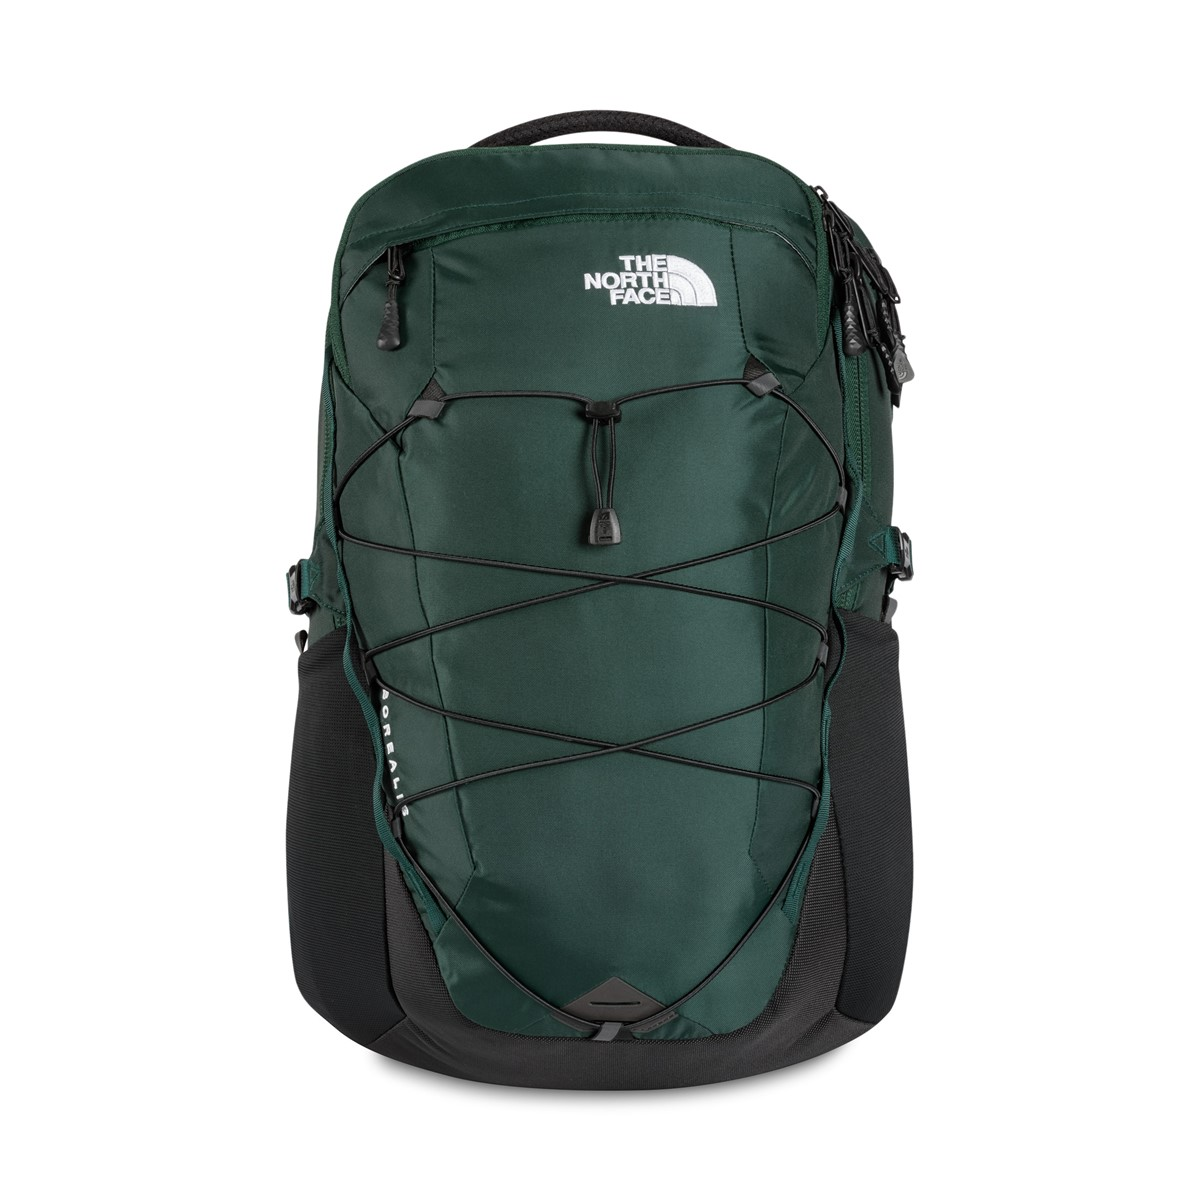 Borealis Backpack in Dark Green